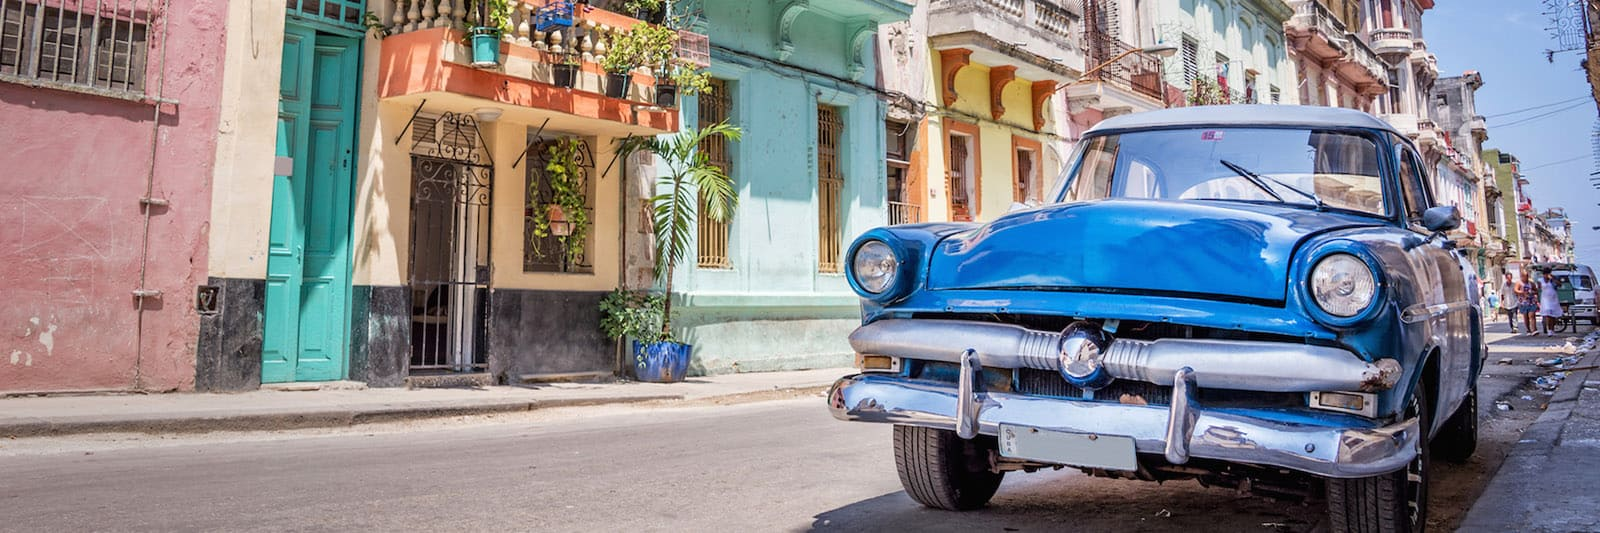 Cuba Photography Tips